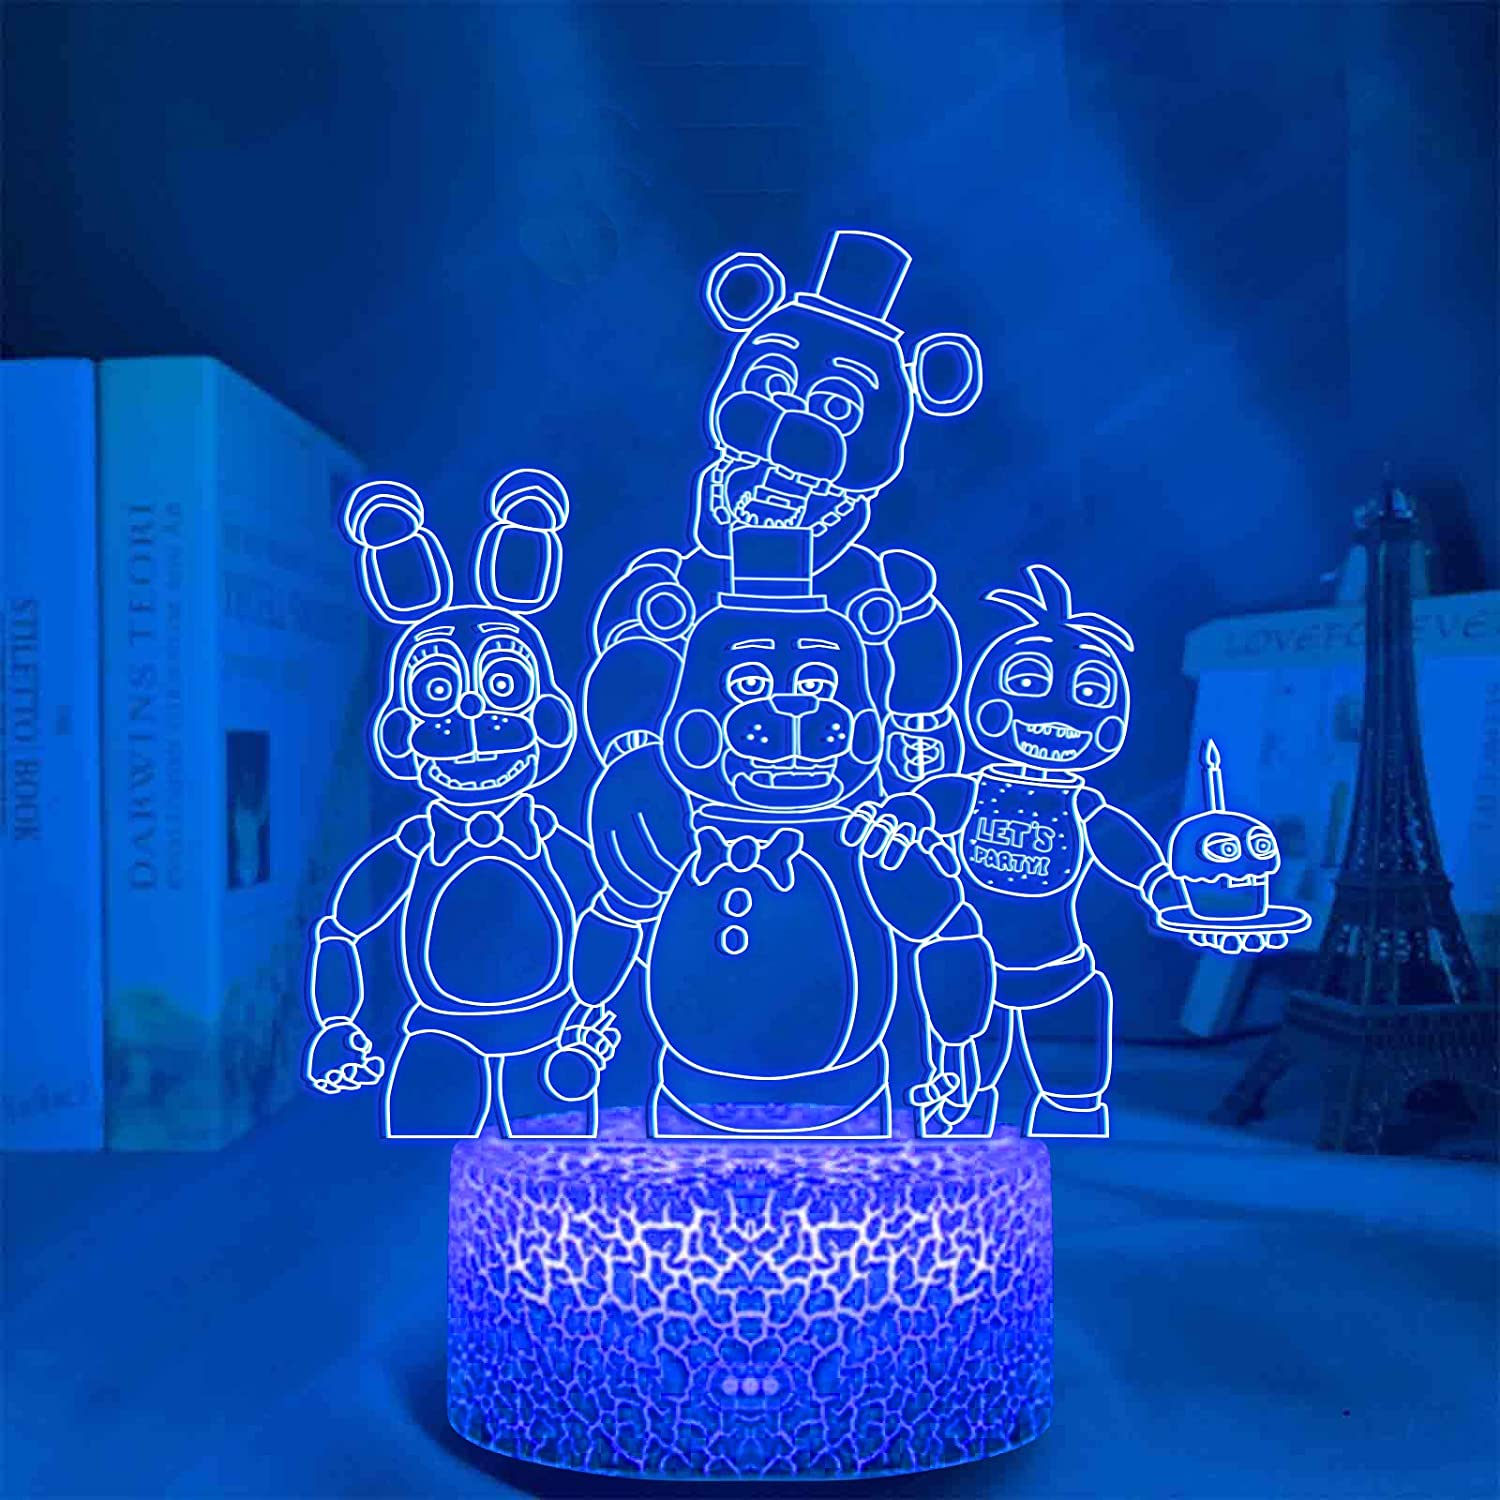 QAHEART FNAF 3D Optical Illusion Lamp, Five Night at Fre-ddy's Lamp Cute Nightlight Remote Control 7 Colors Changing Bedroom Decor for Children Kid Boys Girls Acrylic Table Lamp Gift